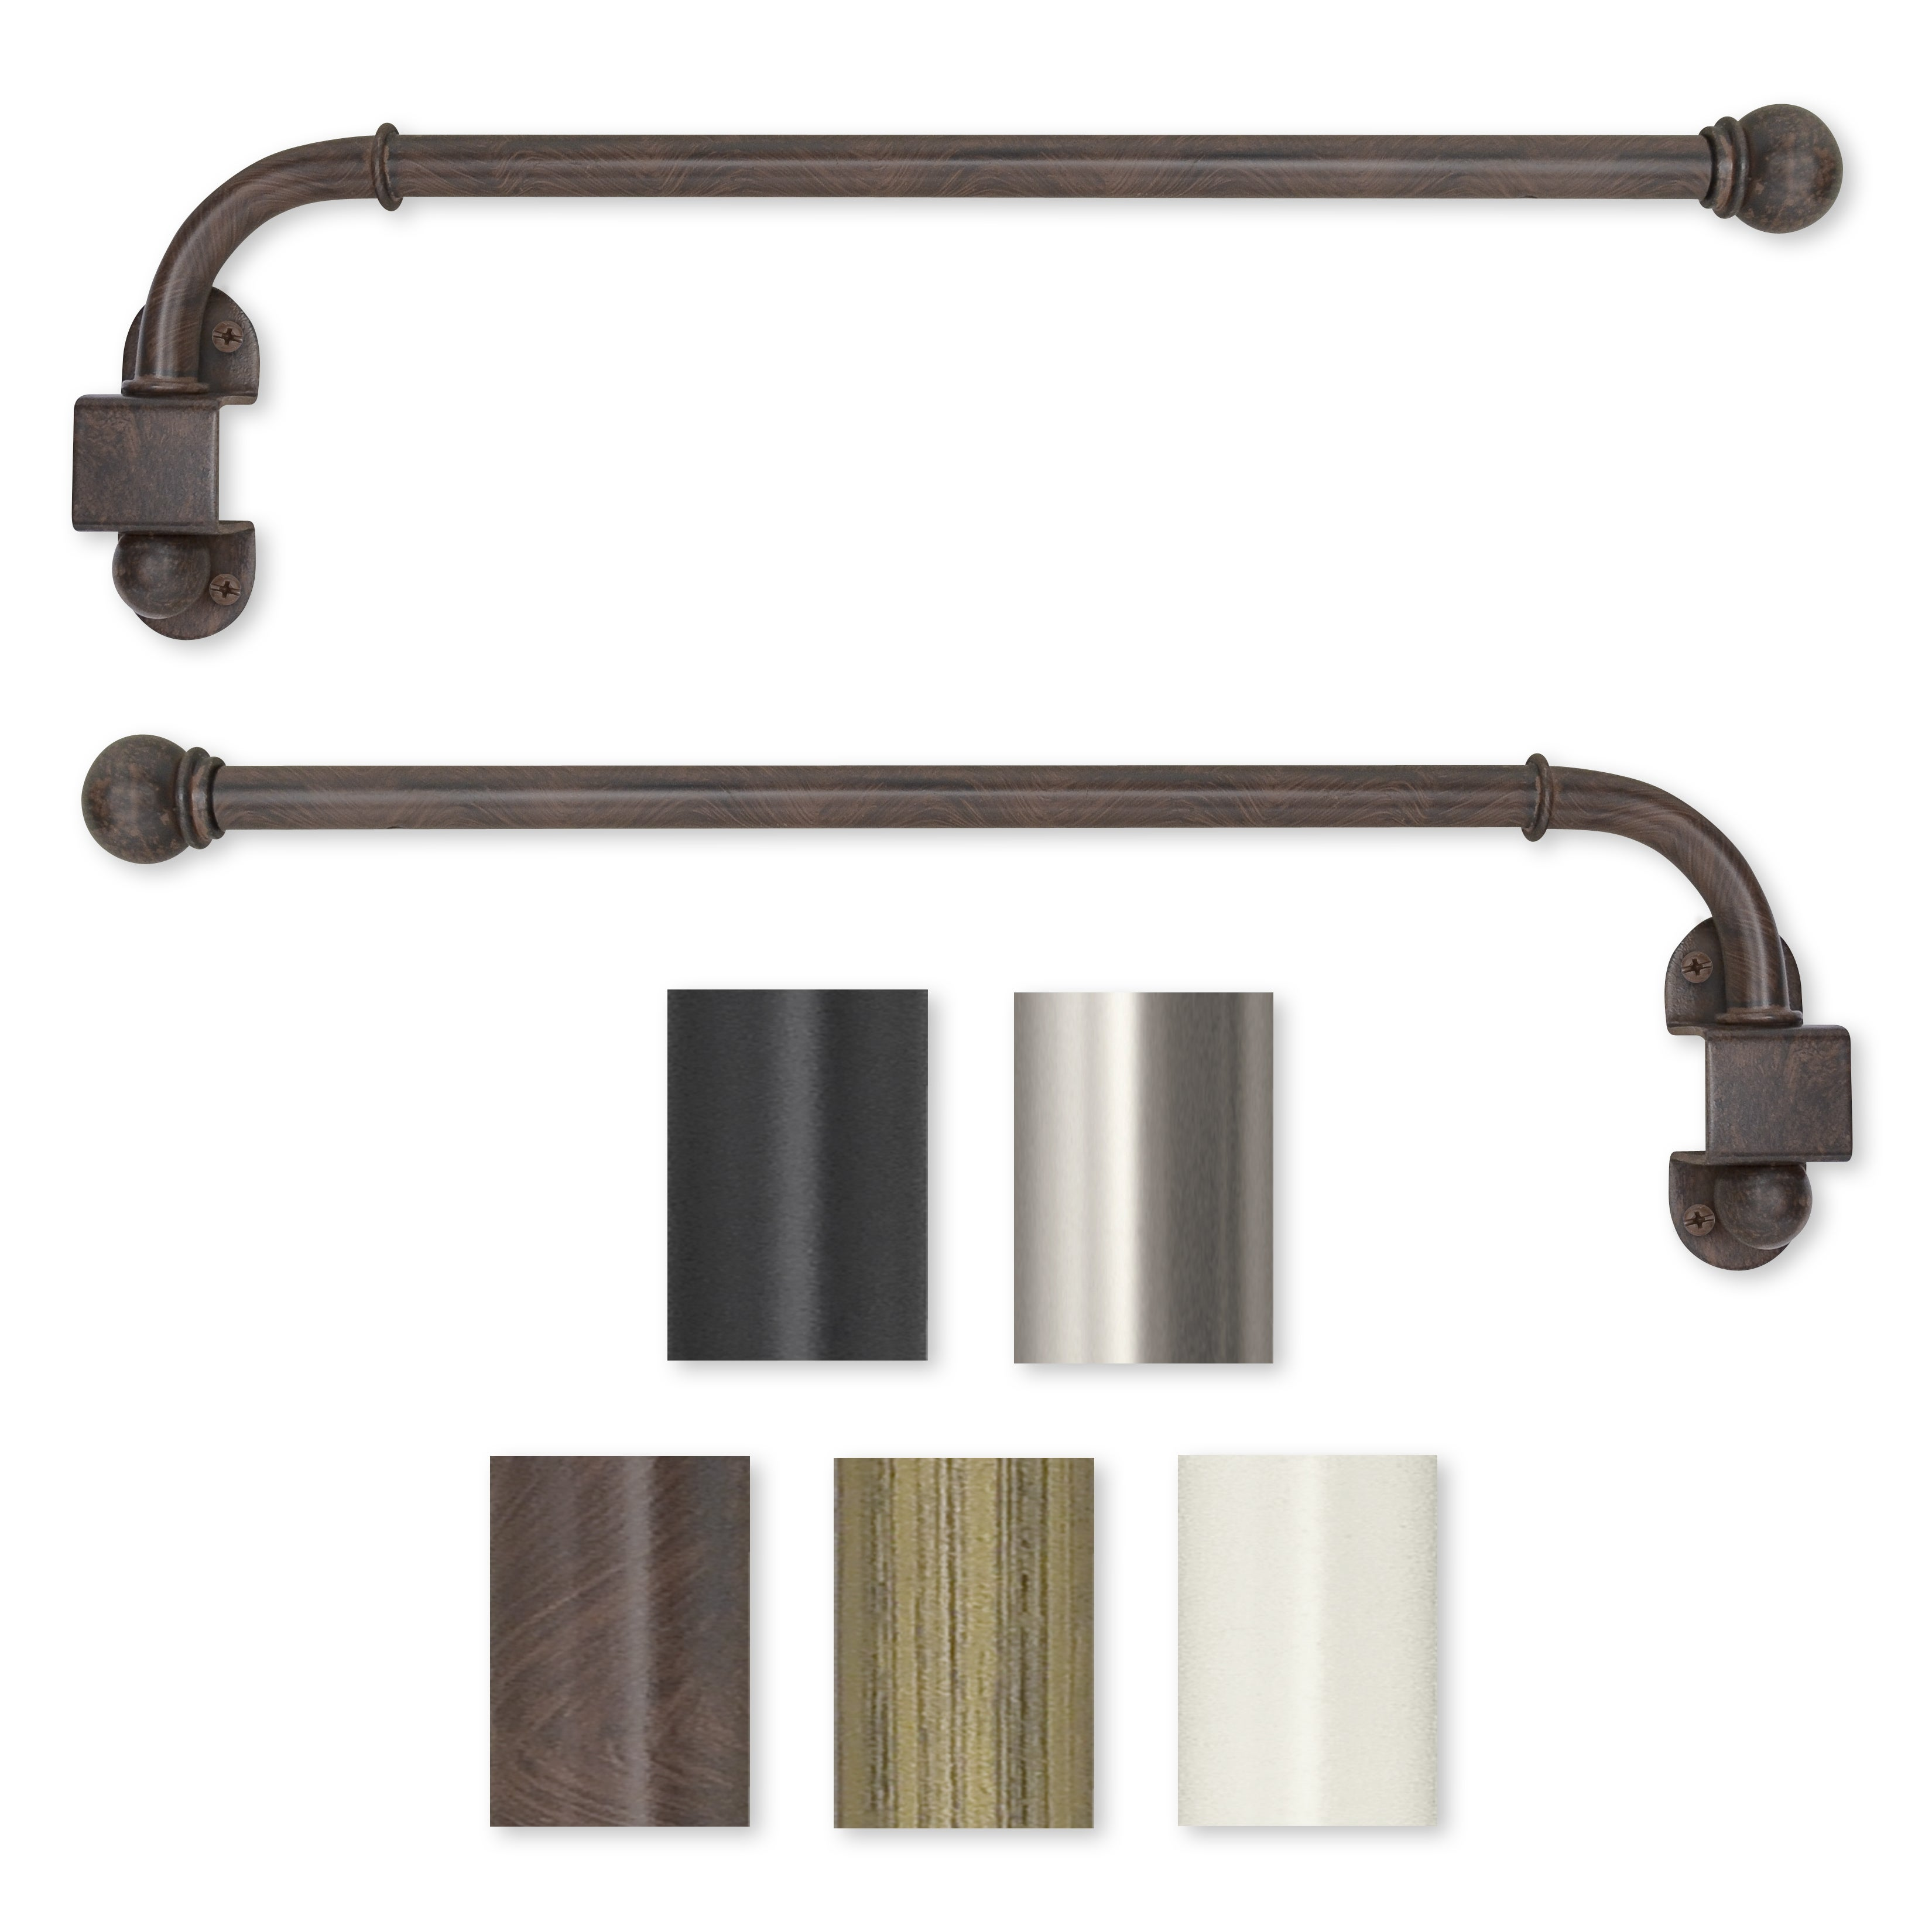 Ceiling mounted curtain rod brackets - Pinnacle Swing Arm 24 To 38 Inch Adjustable Curtain Rod